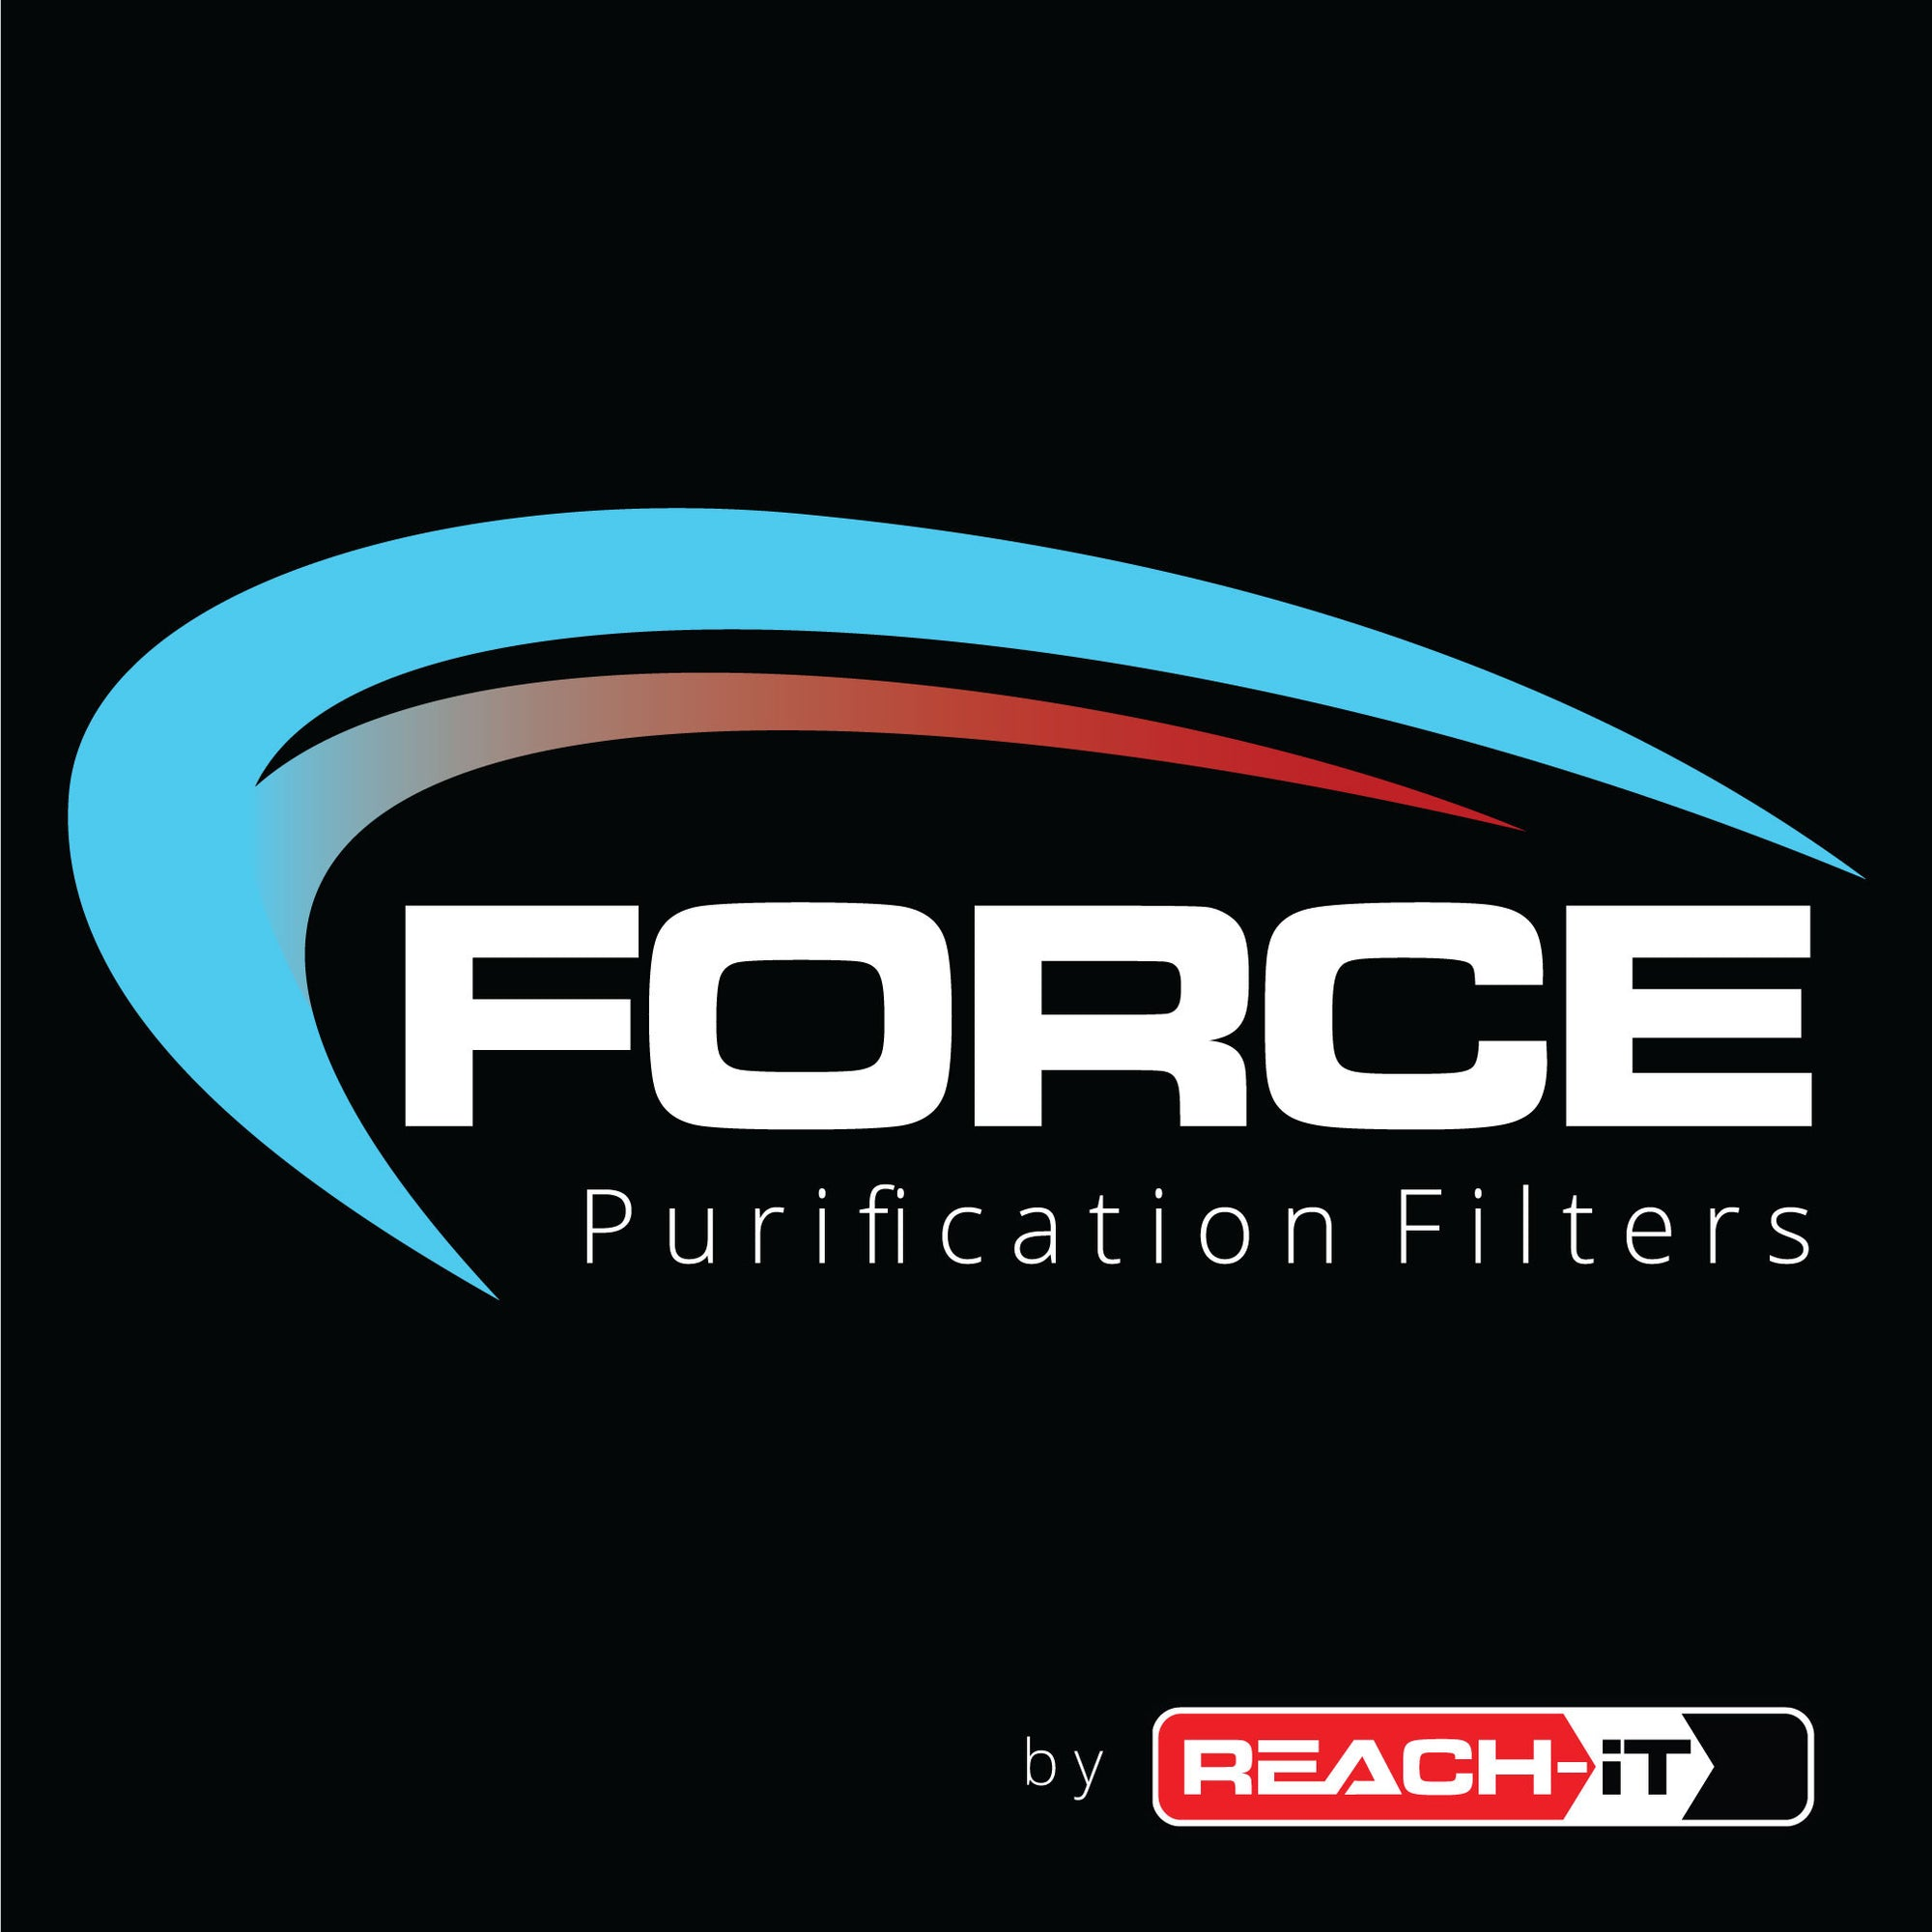 'FORCE' 4021 RO Membranes for REACH-IT FLOW - REACH-iT: it's FASTER, BETTER, SAFER